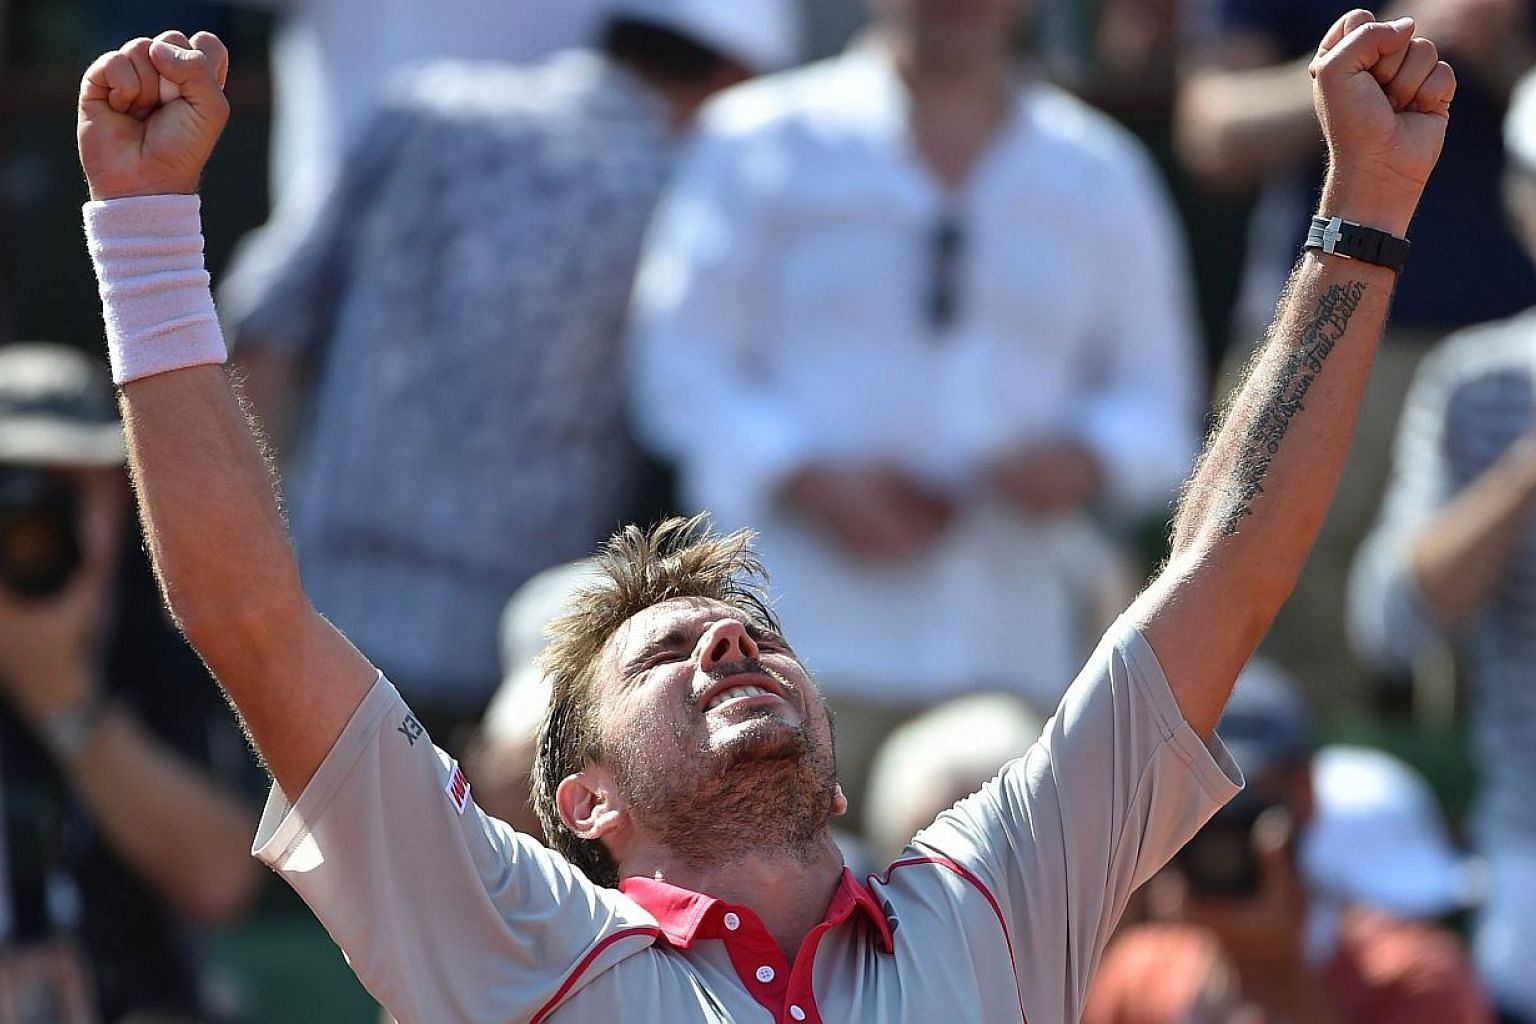 Switzerland's Stanislas Wawrinka celebrates after winning his match against France's Jo-Wilfried Tsonga during their men's semi-final match of the Roland Garros 2015 French Tennis Open in Paris on June 5, 2015. -- PHOTO: AFP